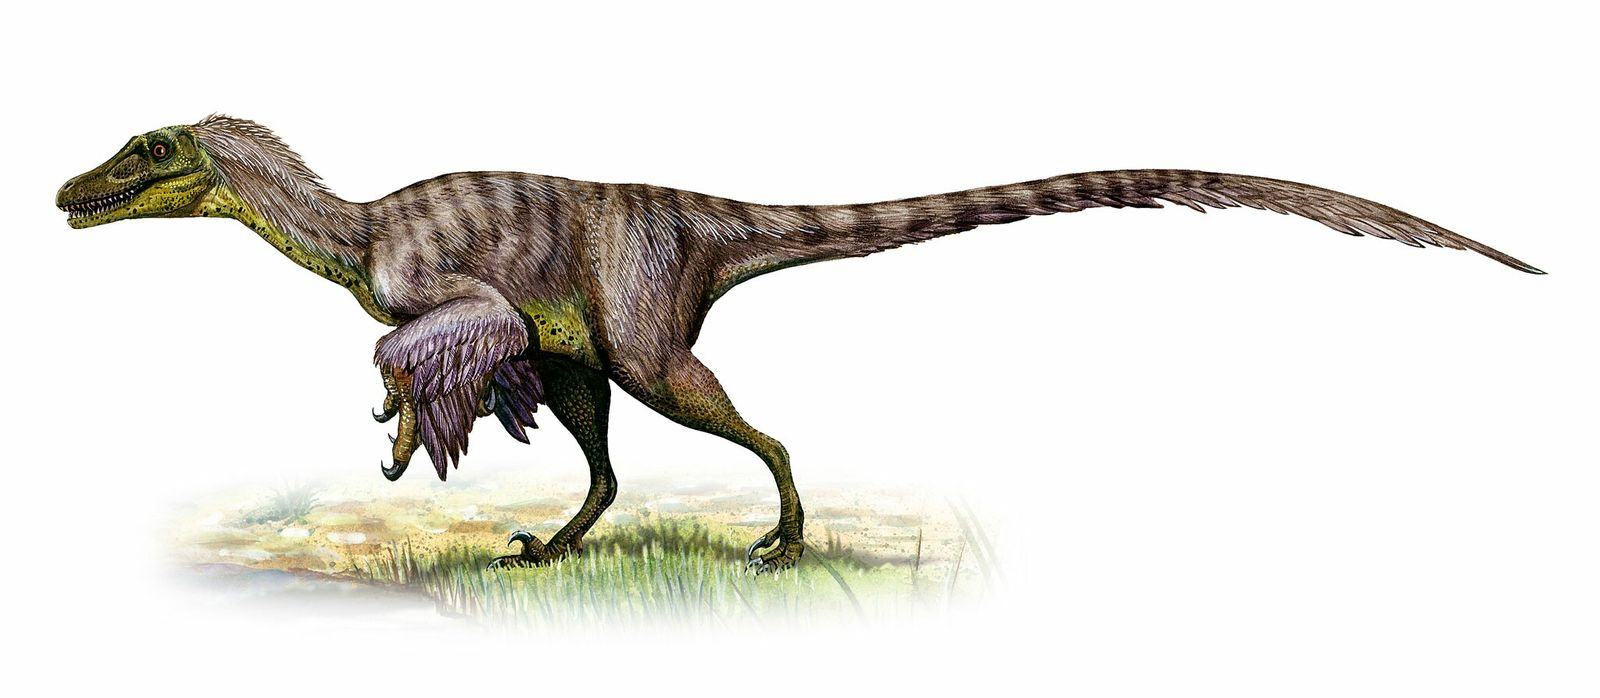 Weighing up to 100 pounds—about the size of a wolf—Velociraptors likely hunted solo as they roamed ...